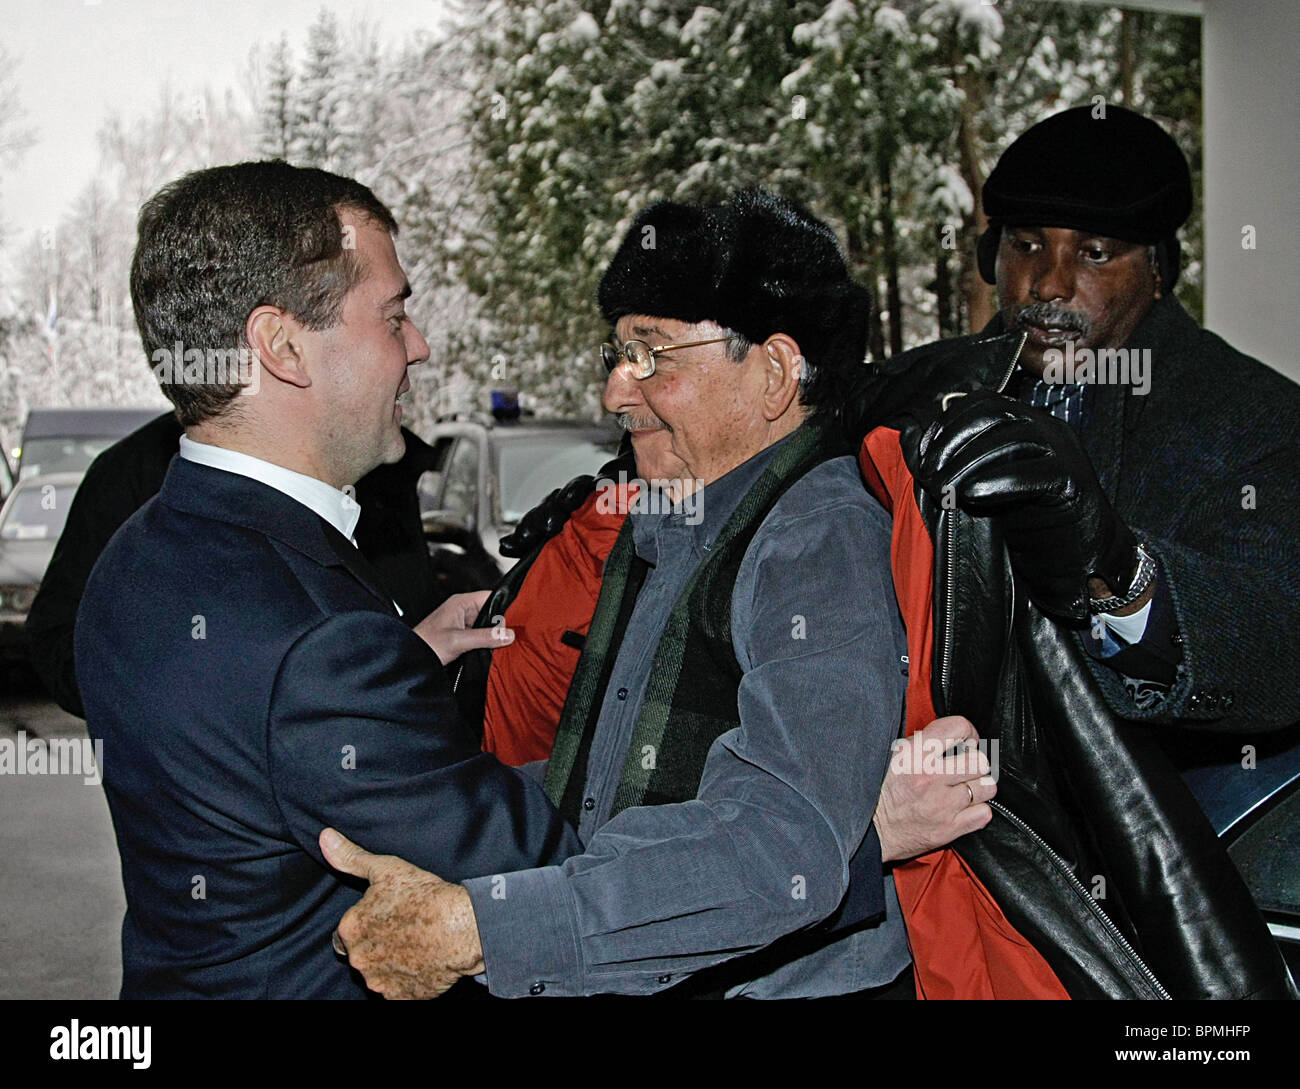 Leaders of Cuba and Russia meet for talks - Stock Image